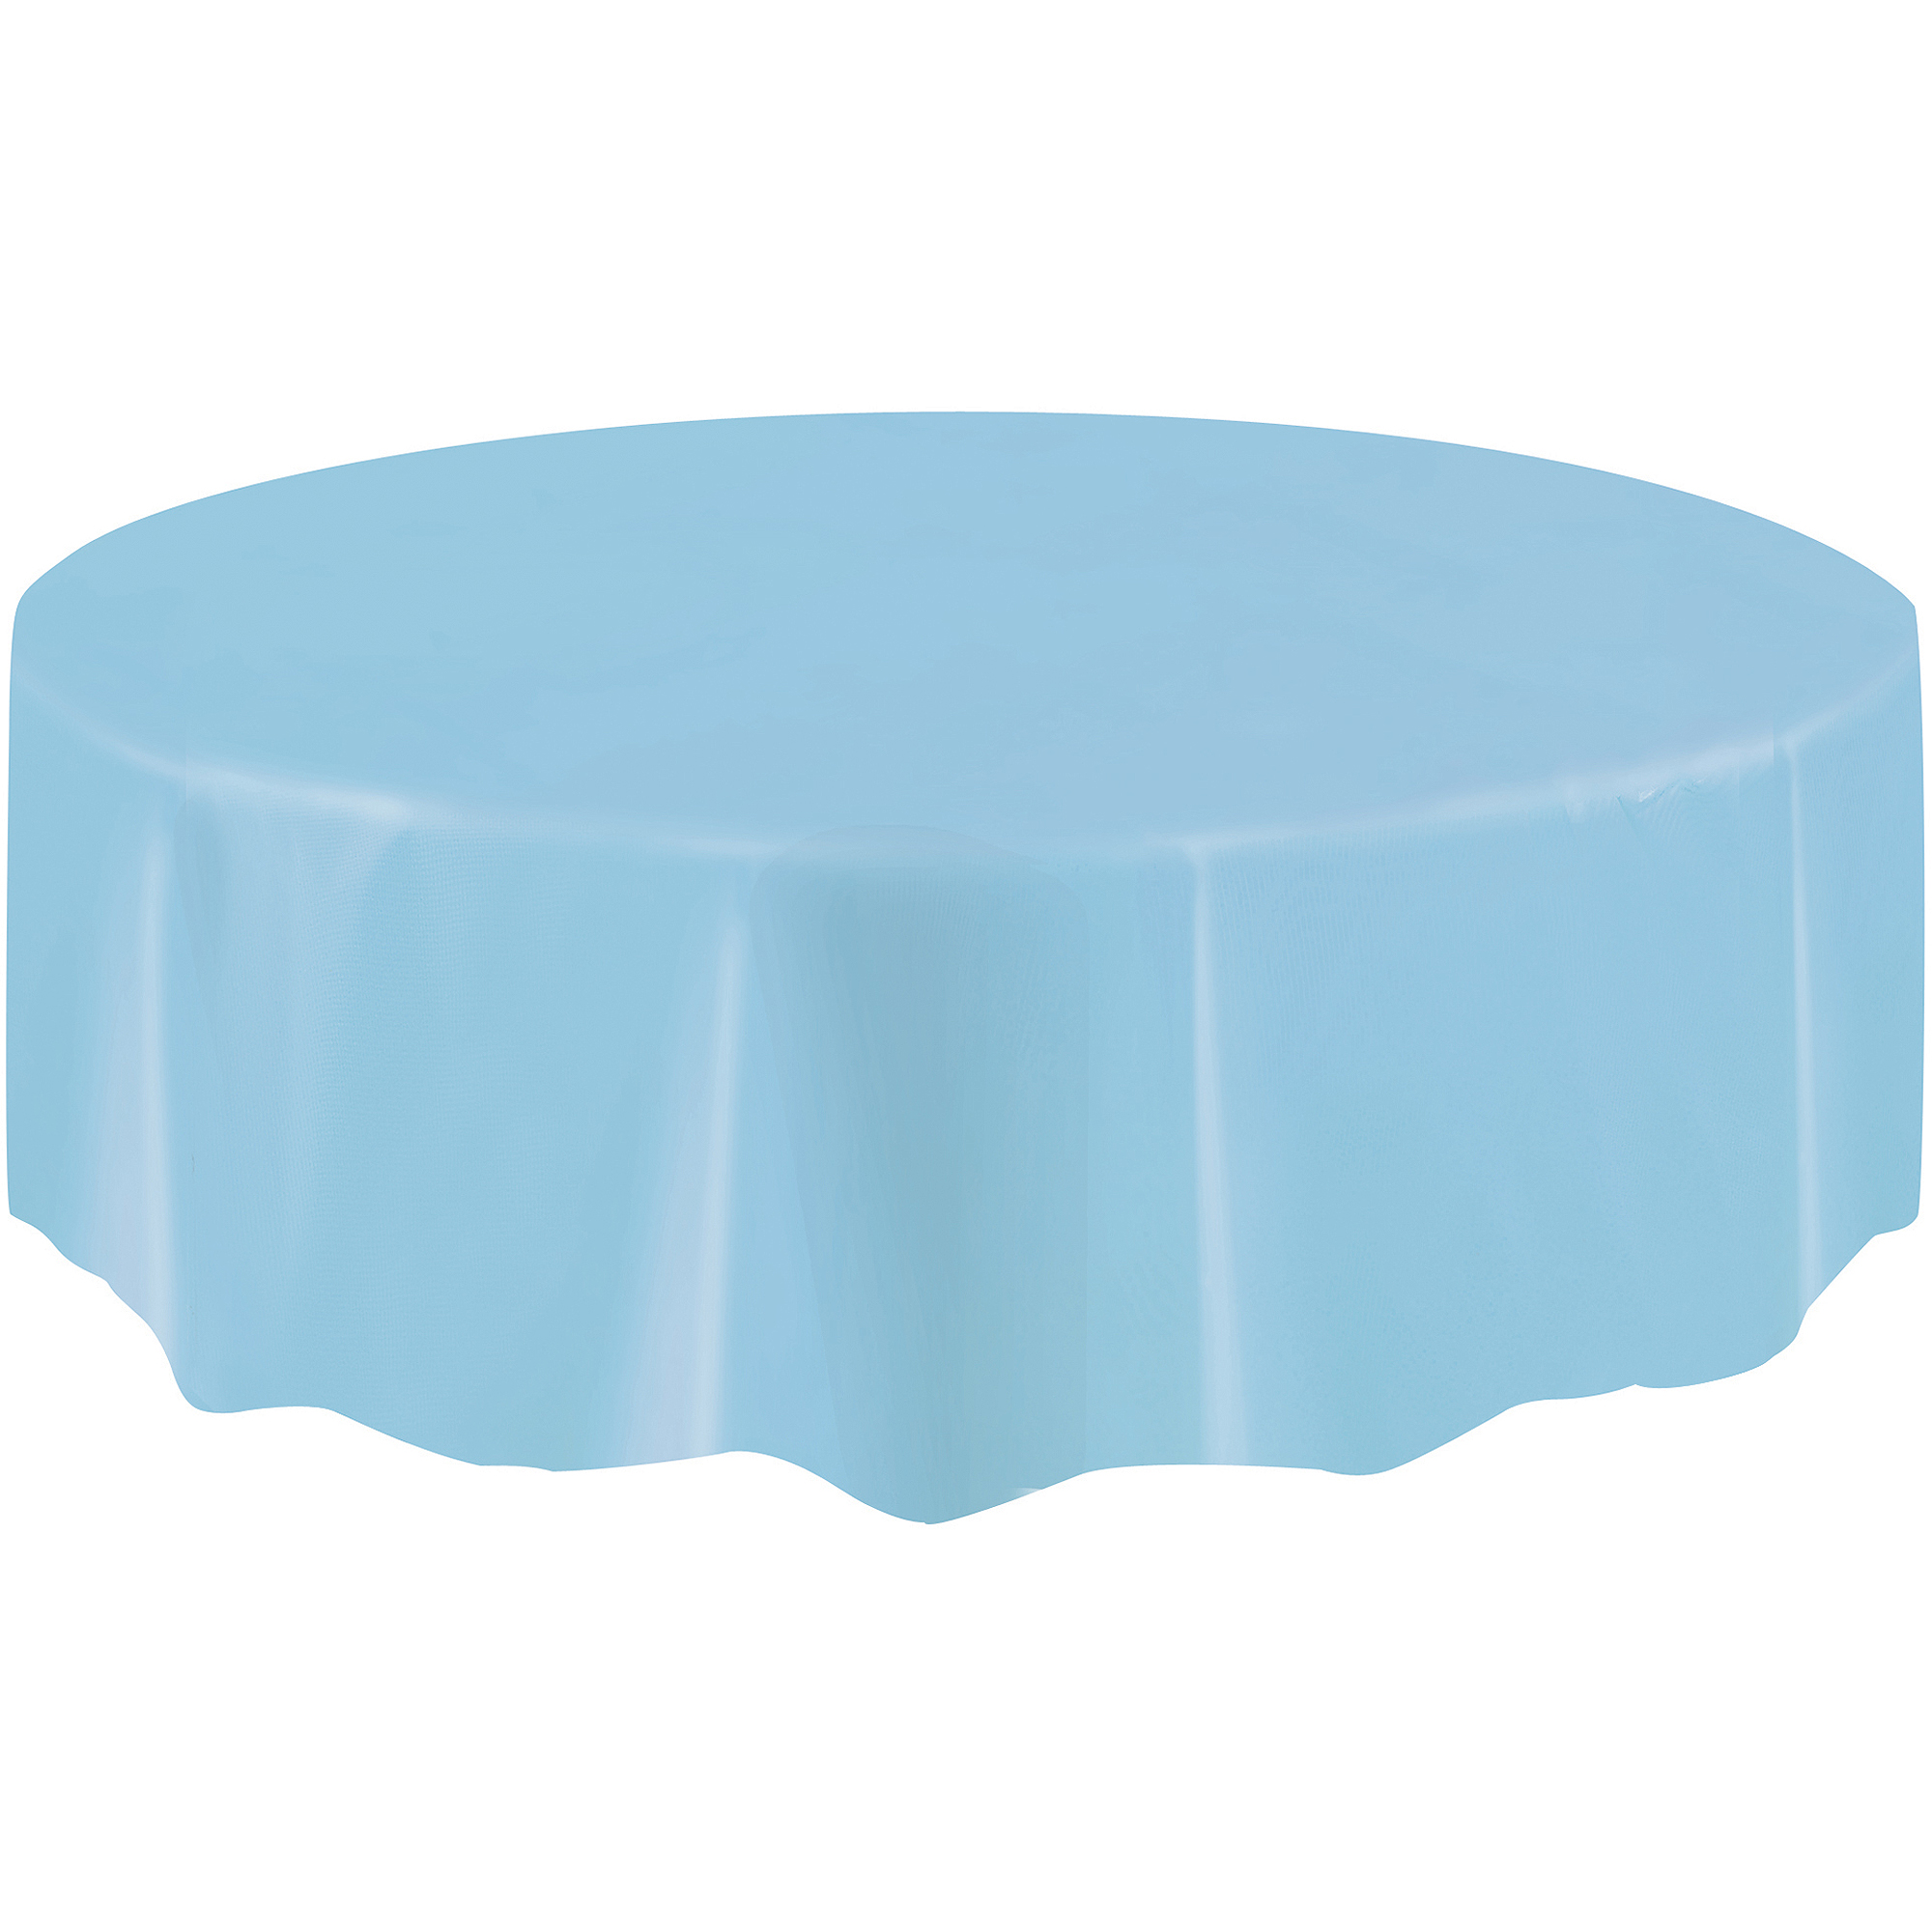 Table Cloth For Round Table Light Blue Plastic Table Cover Round Walmartcom